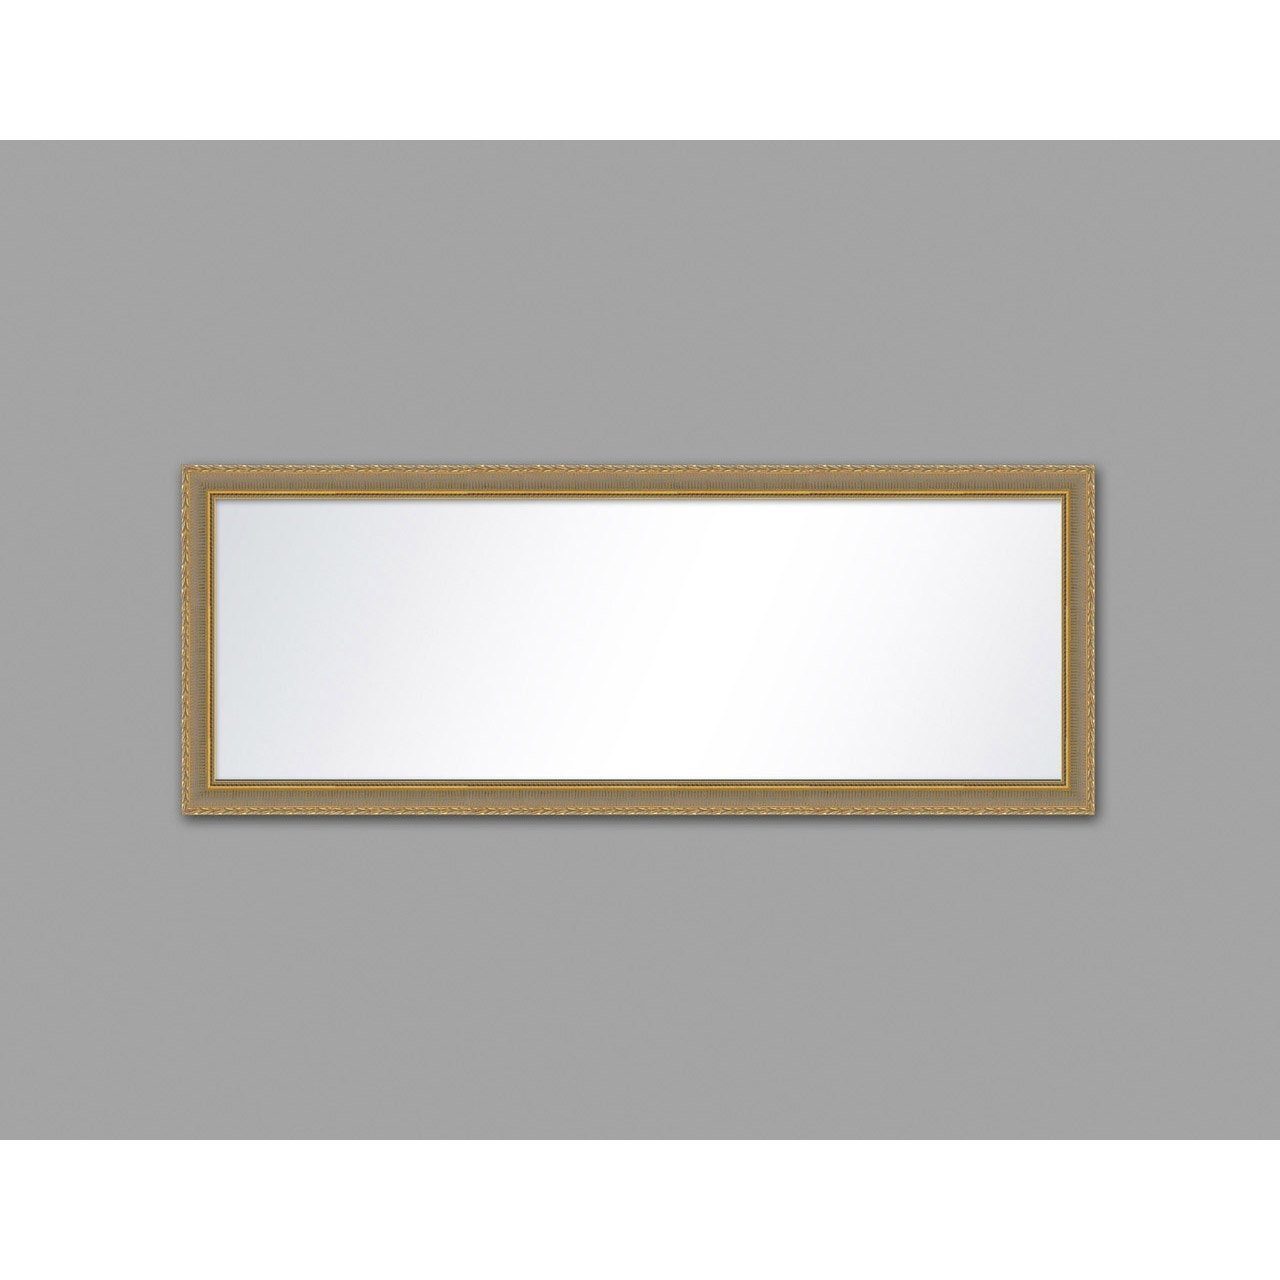 Miroir canaux or x cm leroy merlin for Miroir 50 x 70 leroy merlin